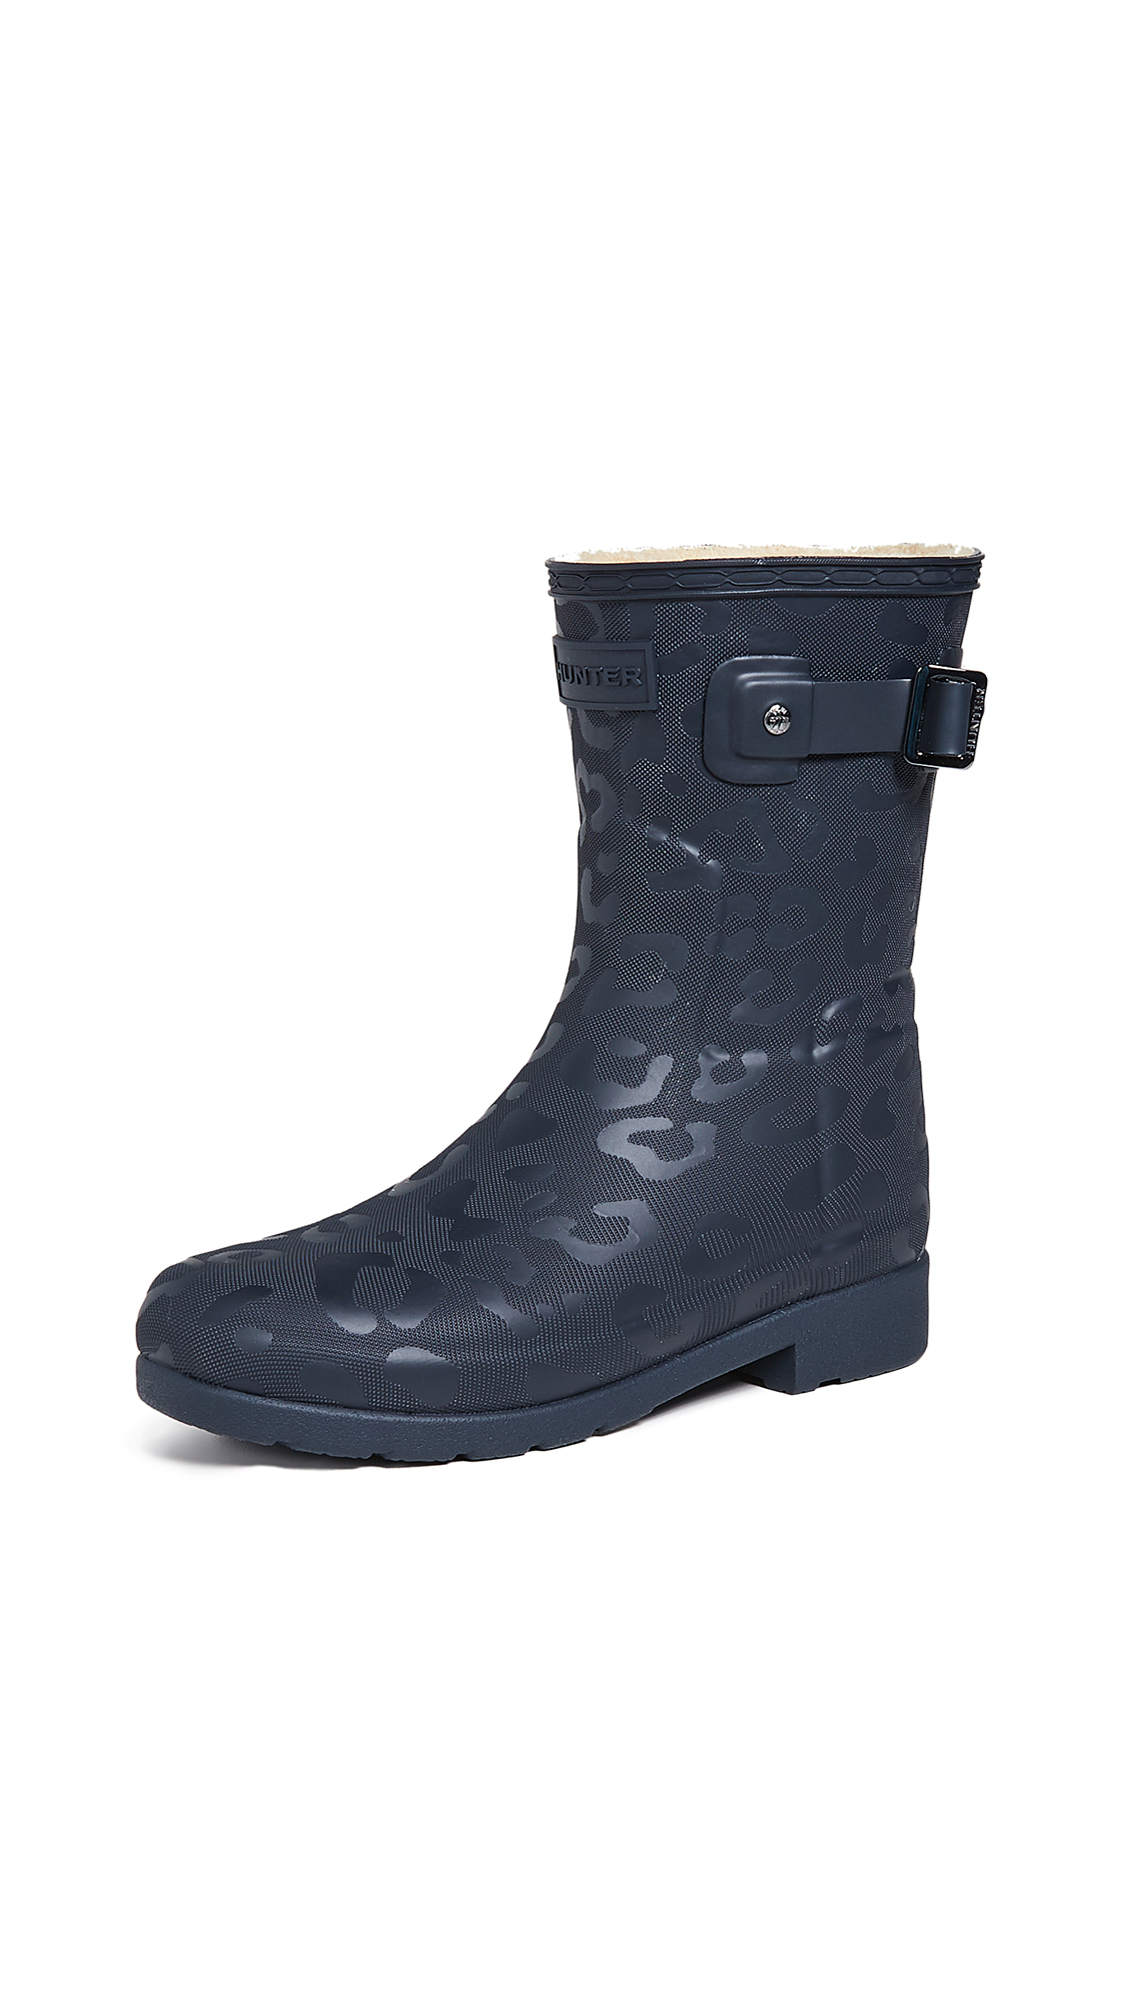 Hunter Boots Refined Insulated Short Boots - Navy